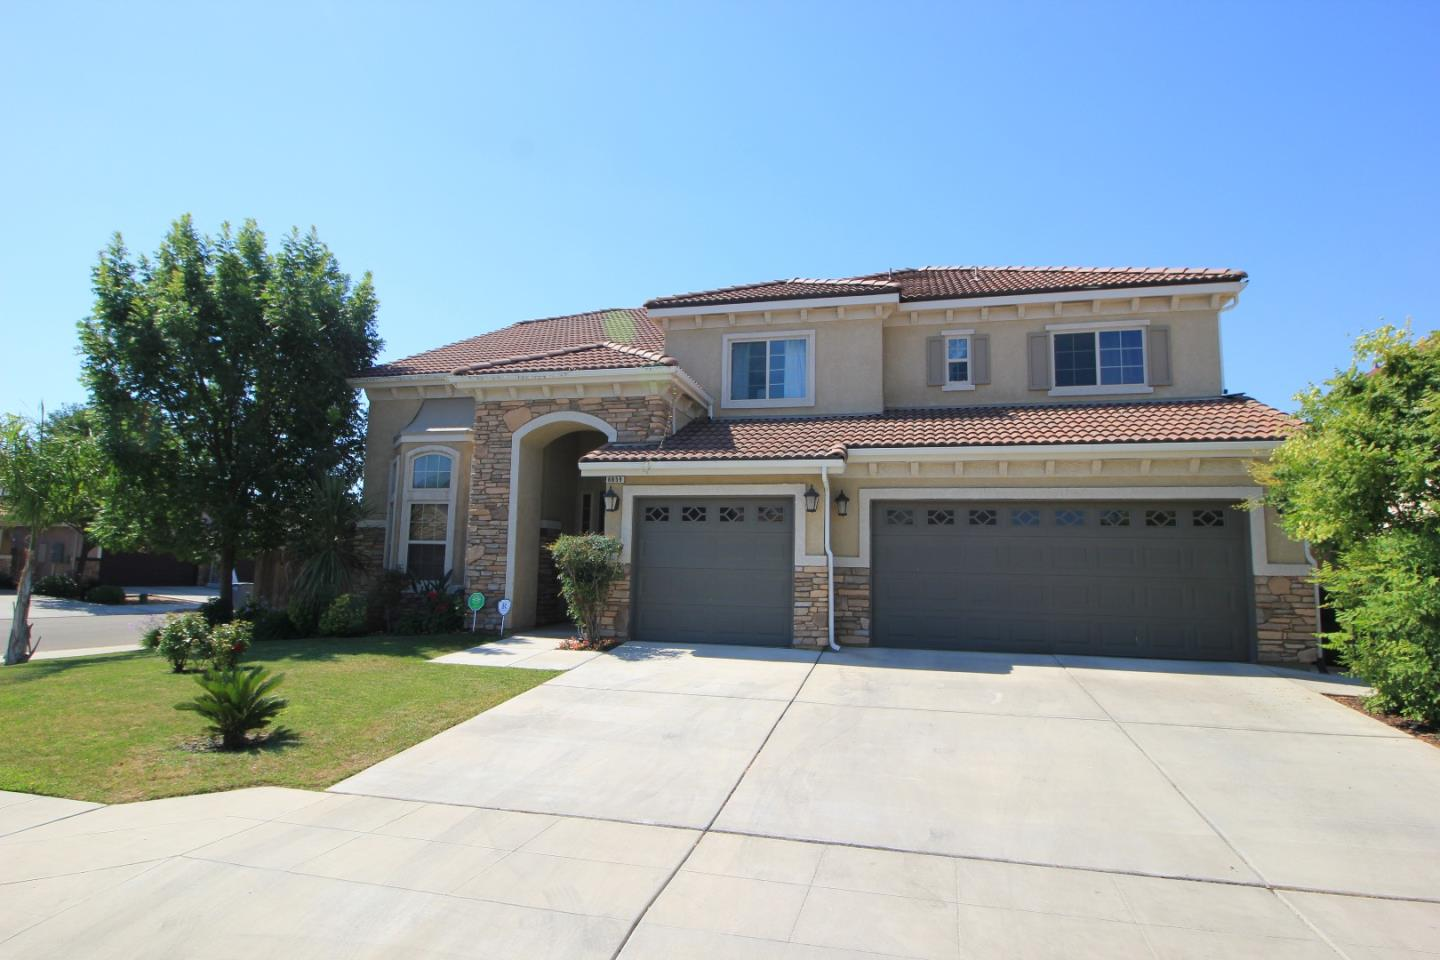 Additional photo for property listing at 6859 E Simpson  Fresno, California 93727 Estados Unidos